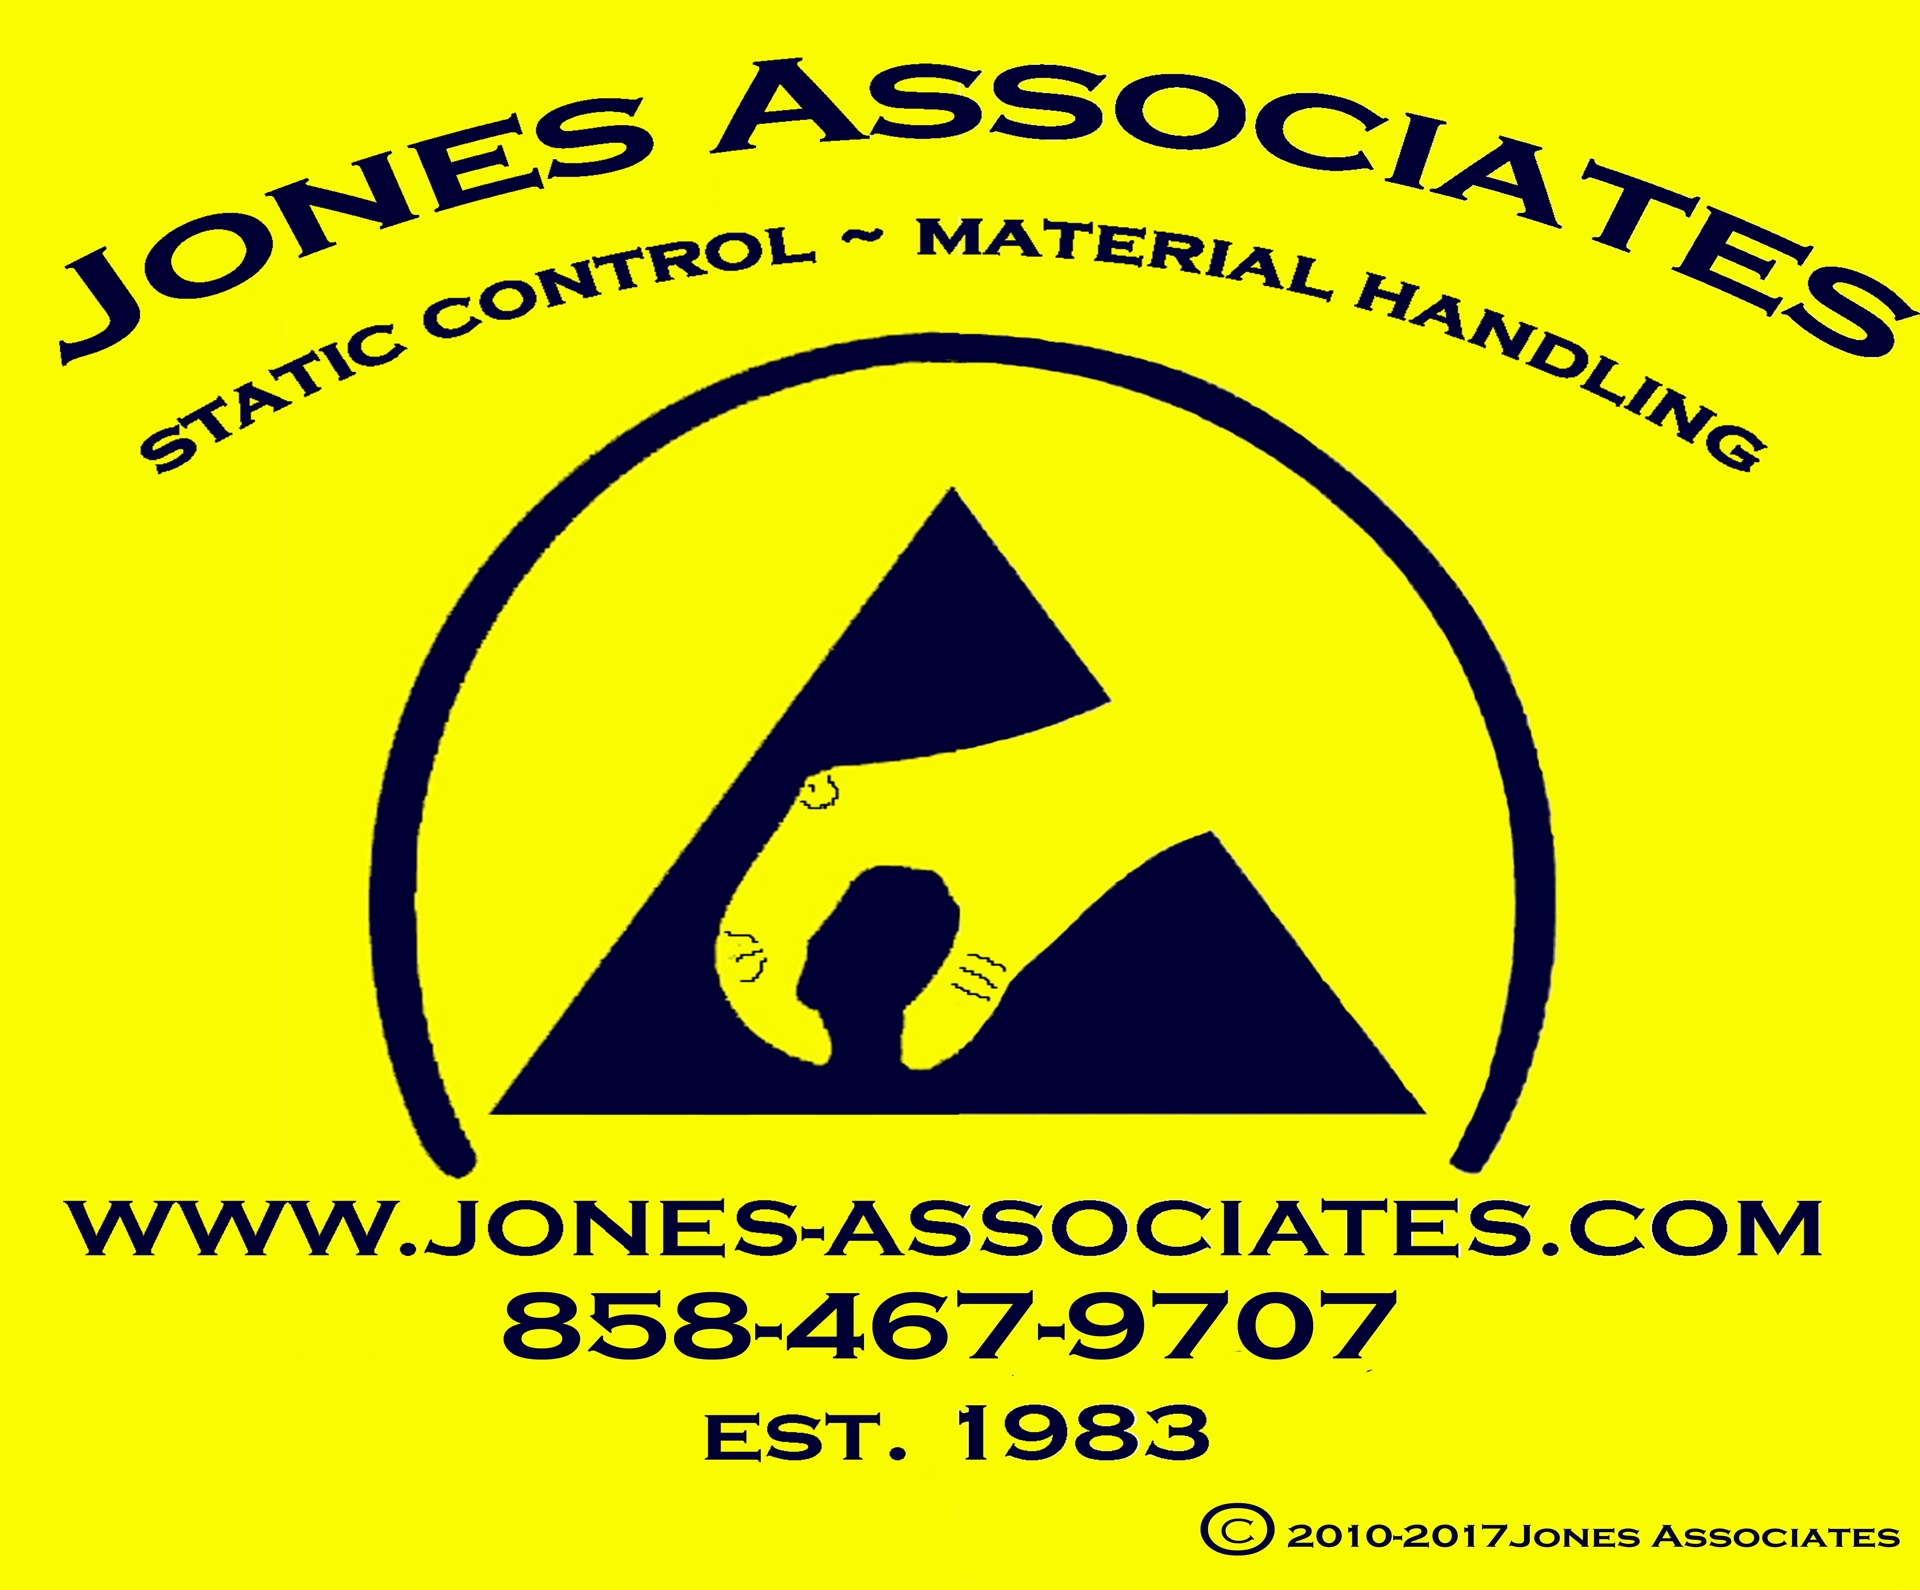 jones associates, ESD, static control, material handling and seismic safety product specialist